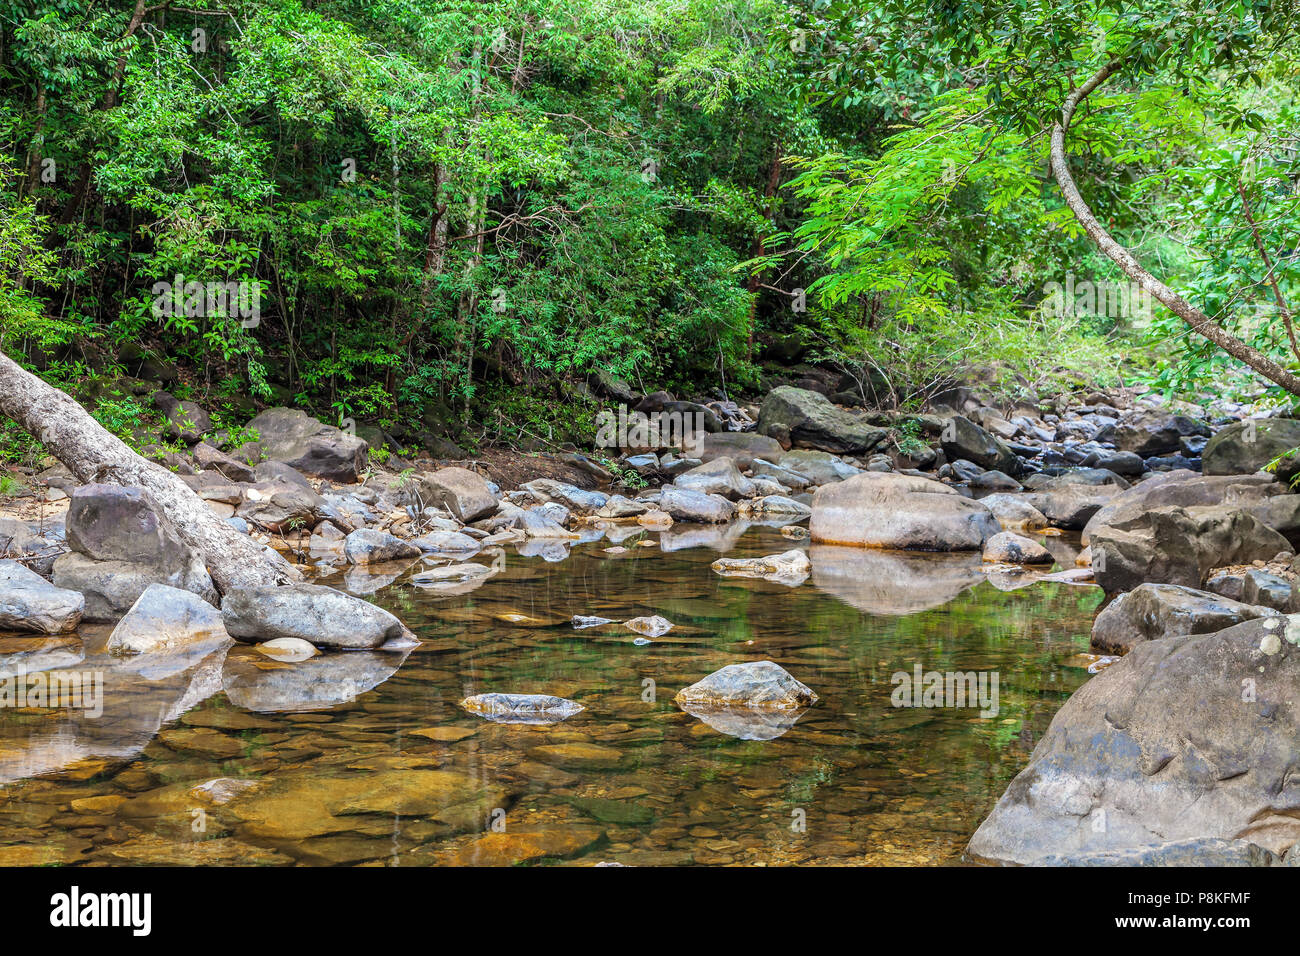 Wild jungle of the island of Koh Chang in Thailand - Stock Image